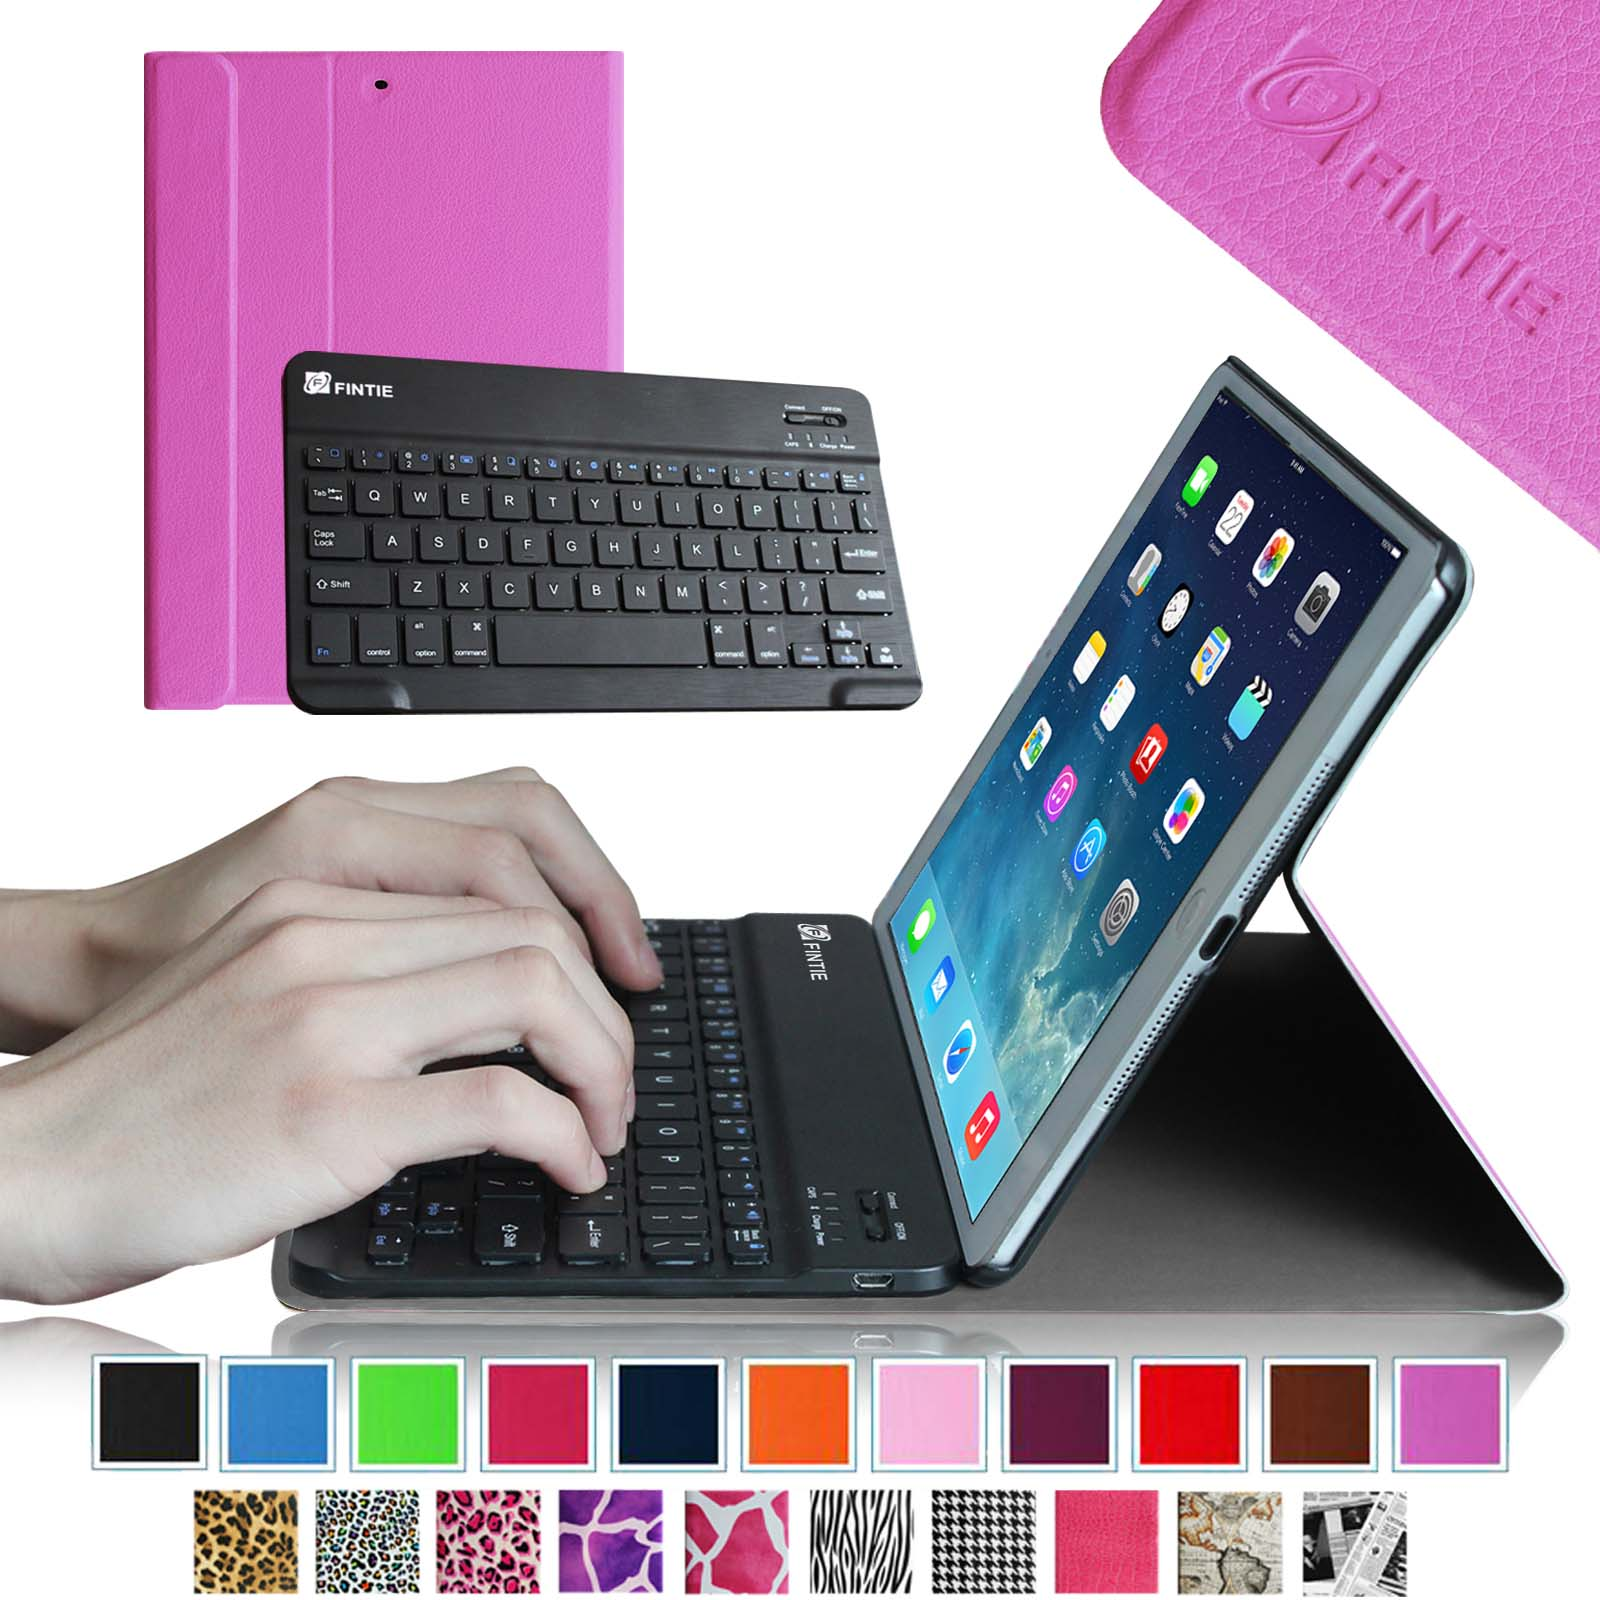 Fintie SmartShell Cover with Wireless Bluetooth Keyboard Case for Apple iPad Air / iPad 5 (5th Generation), Violet